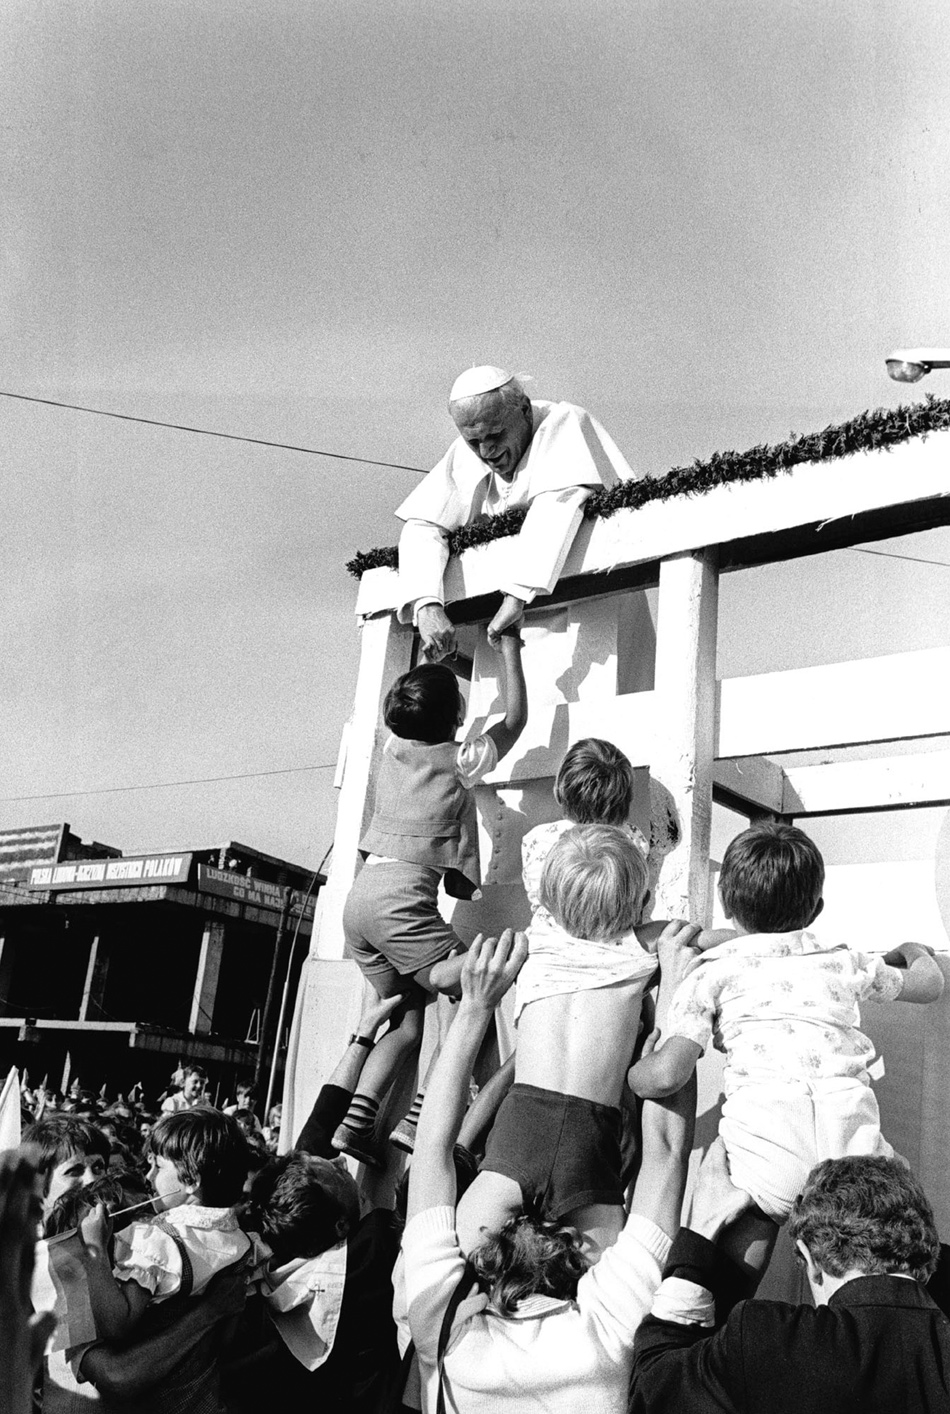 Pope John Paul II with a group of children in Czestochowa during his first papal visit to Poland, June 1979